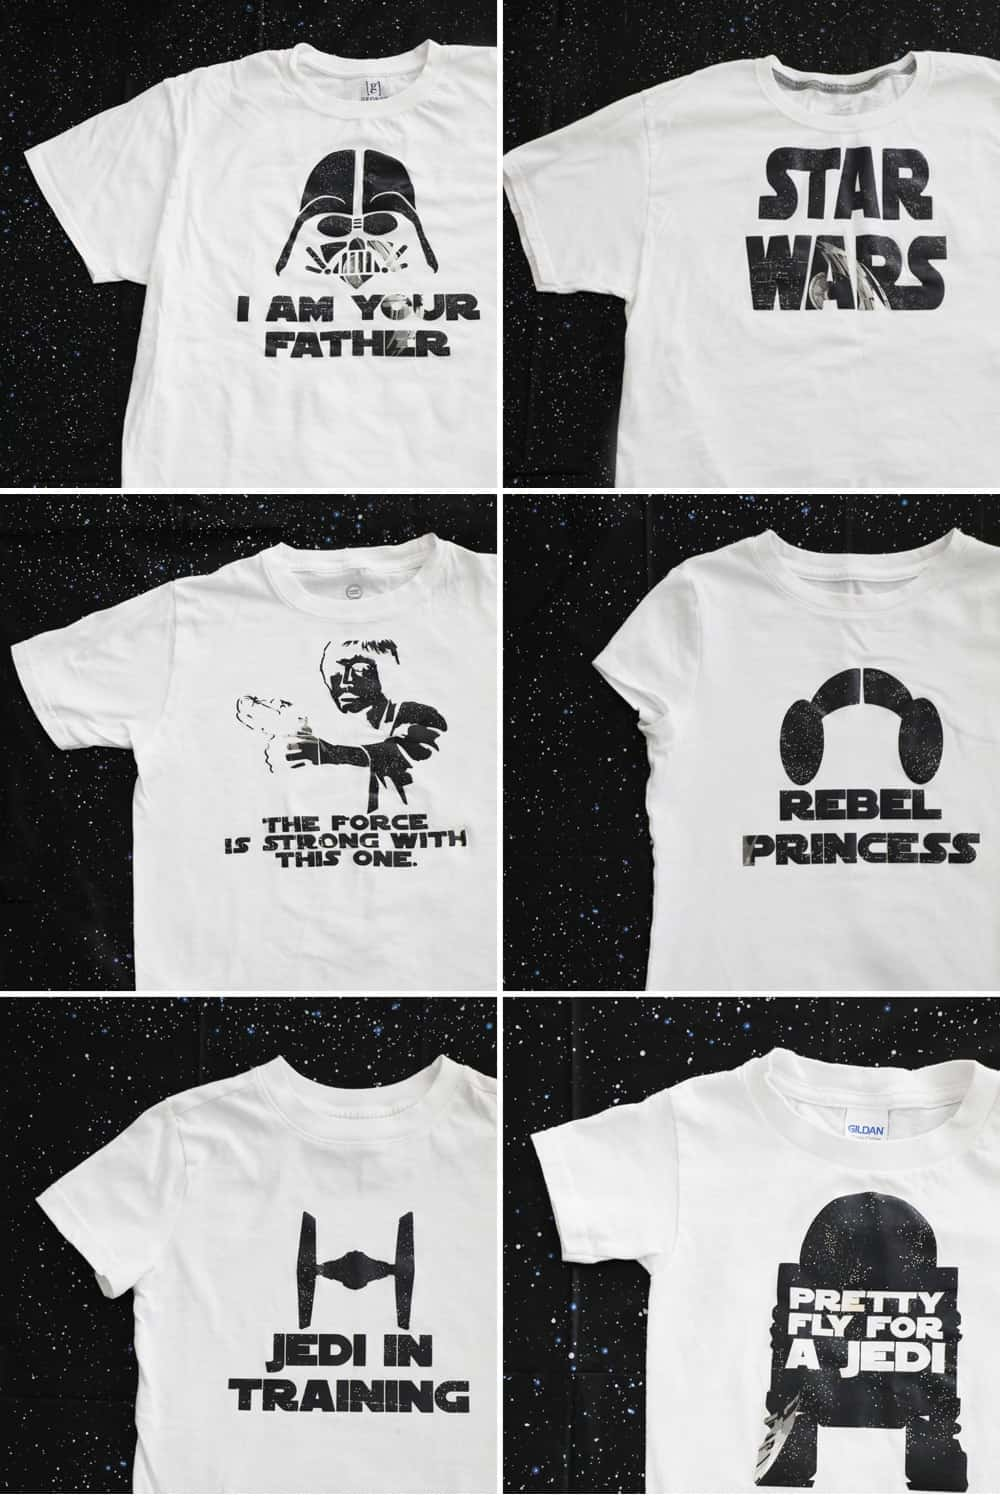 collage of six different white star wars shirts against a black background